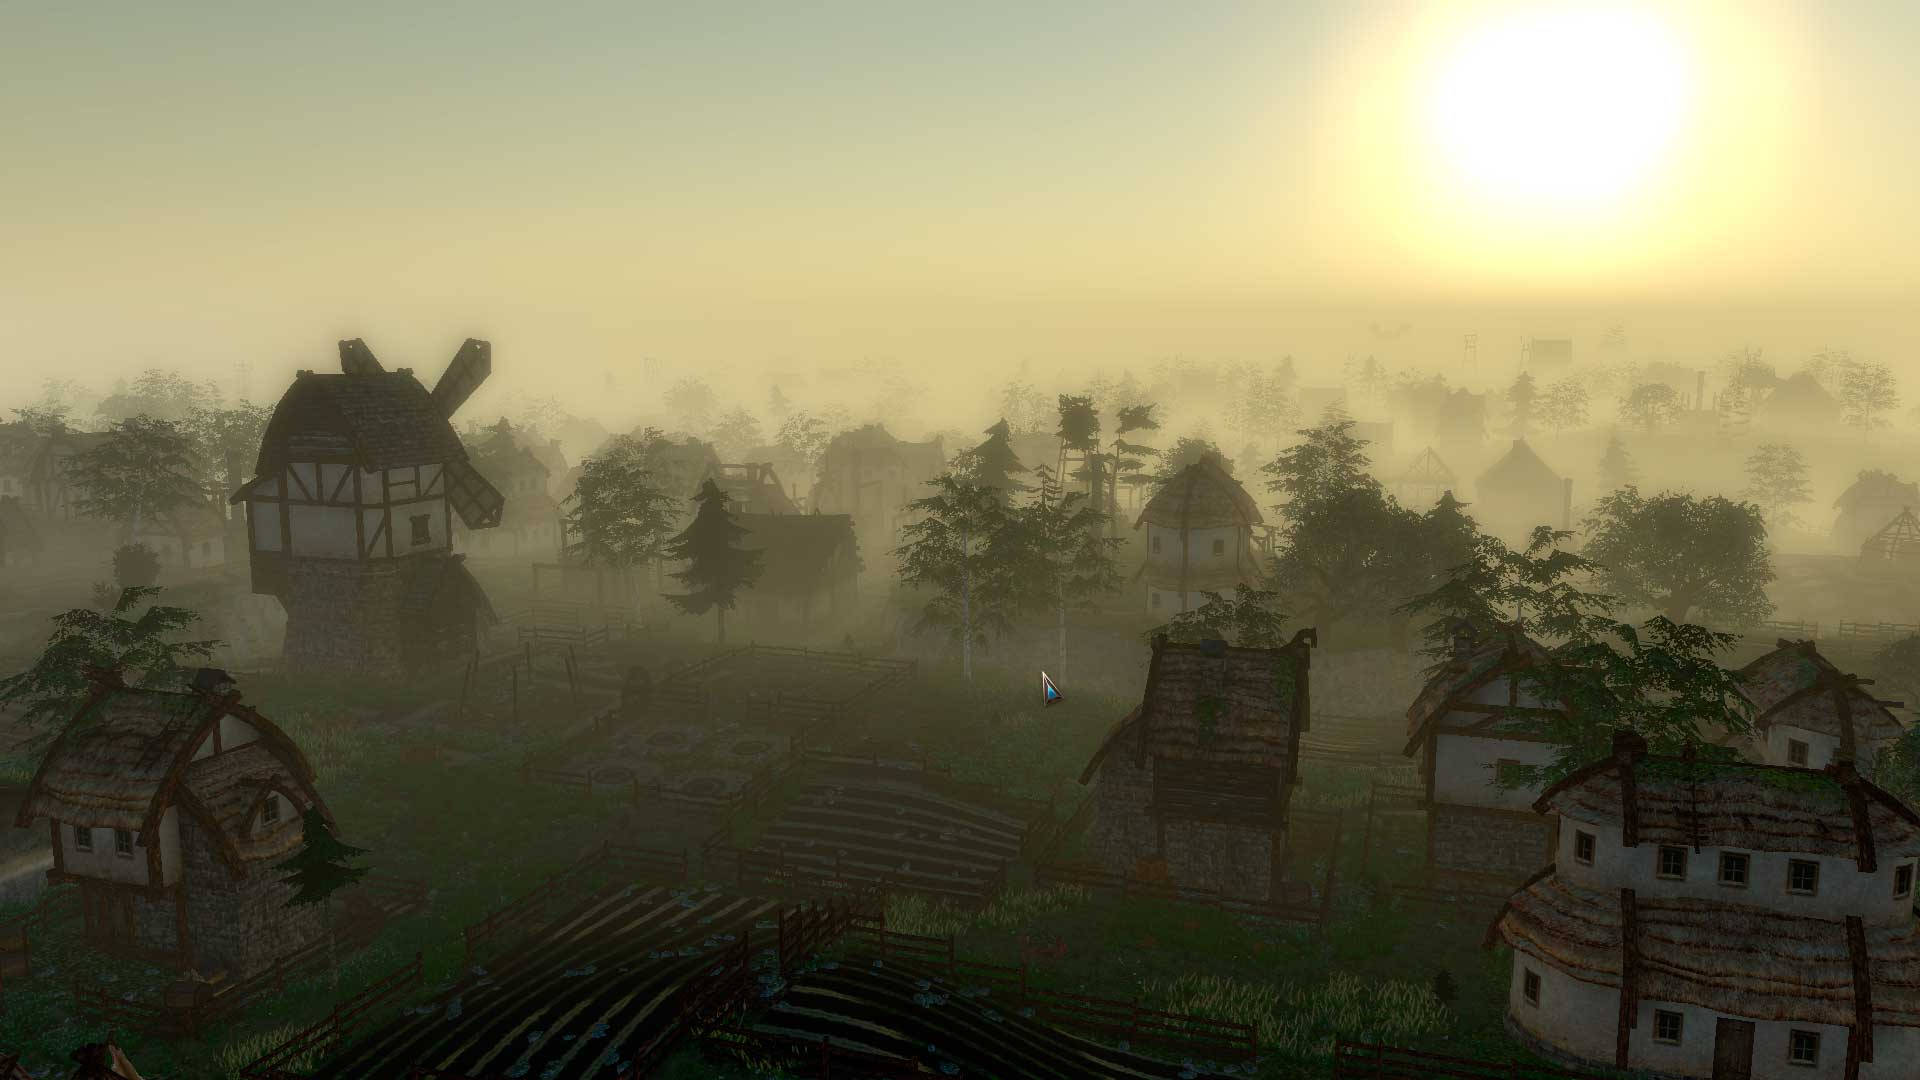 http://forest-village-game.com/wp-content/gallery/first-person-view/Morning-03.jpg